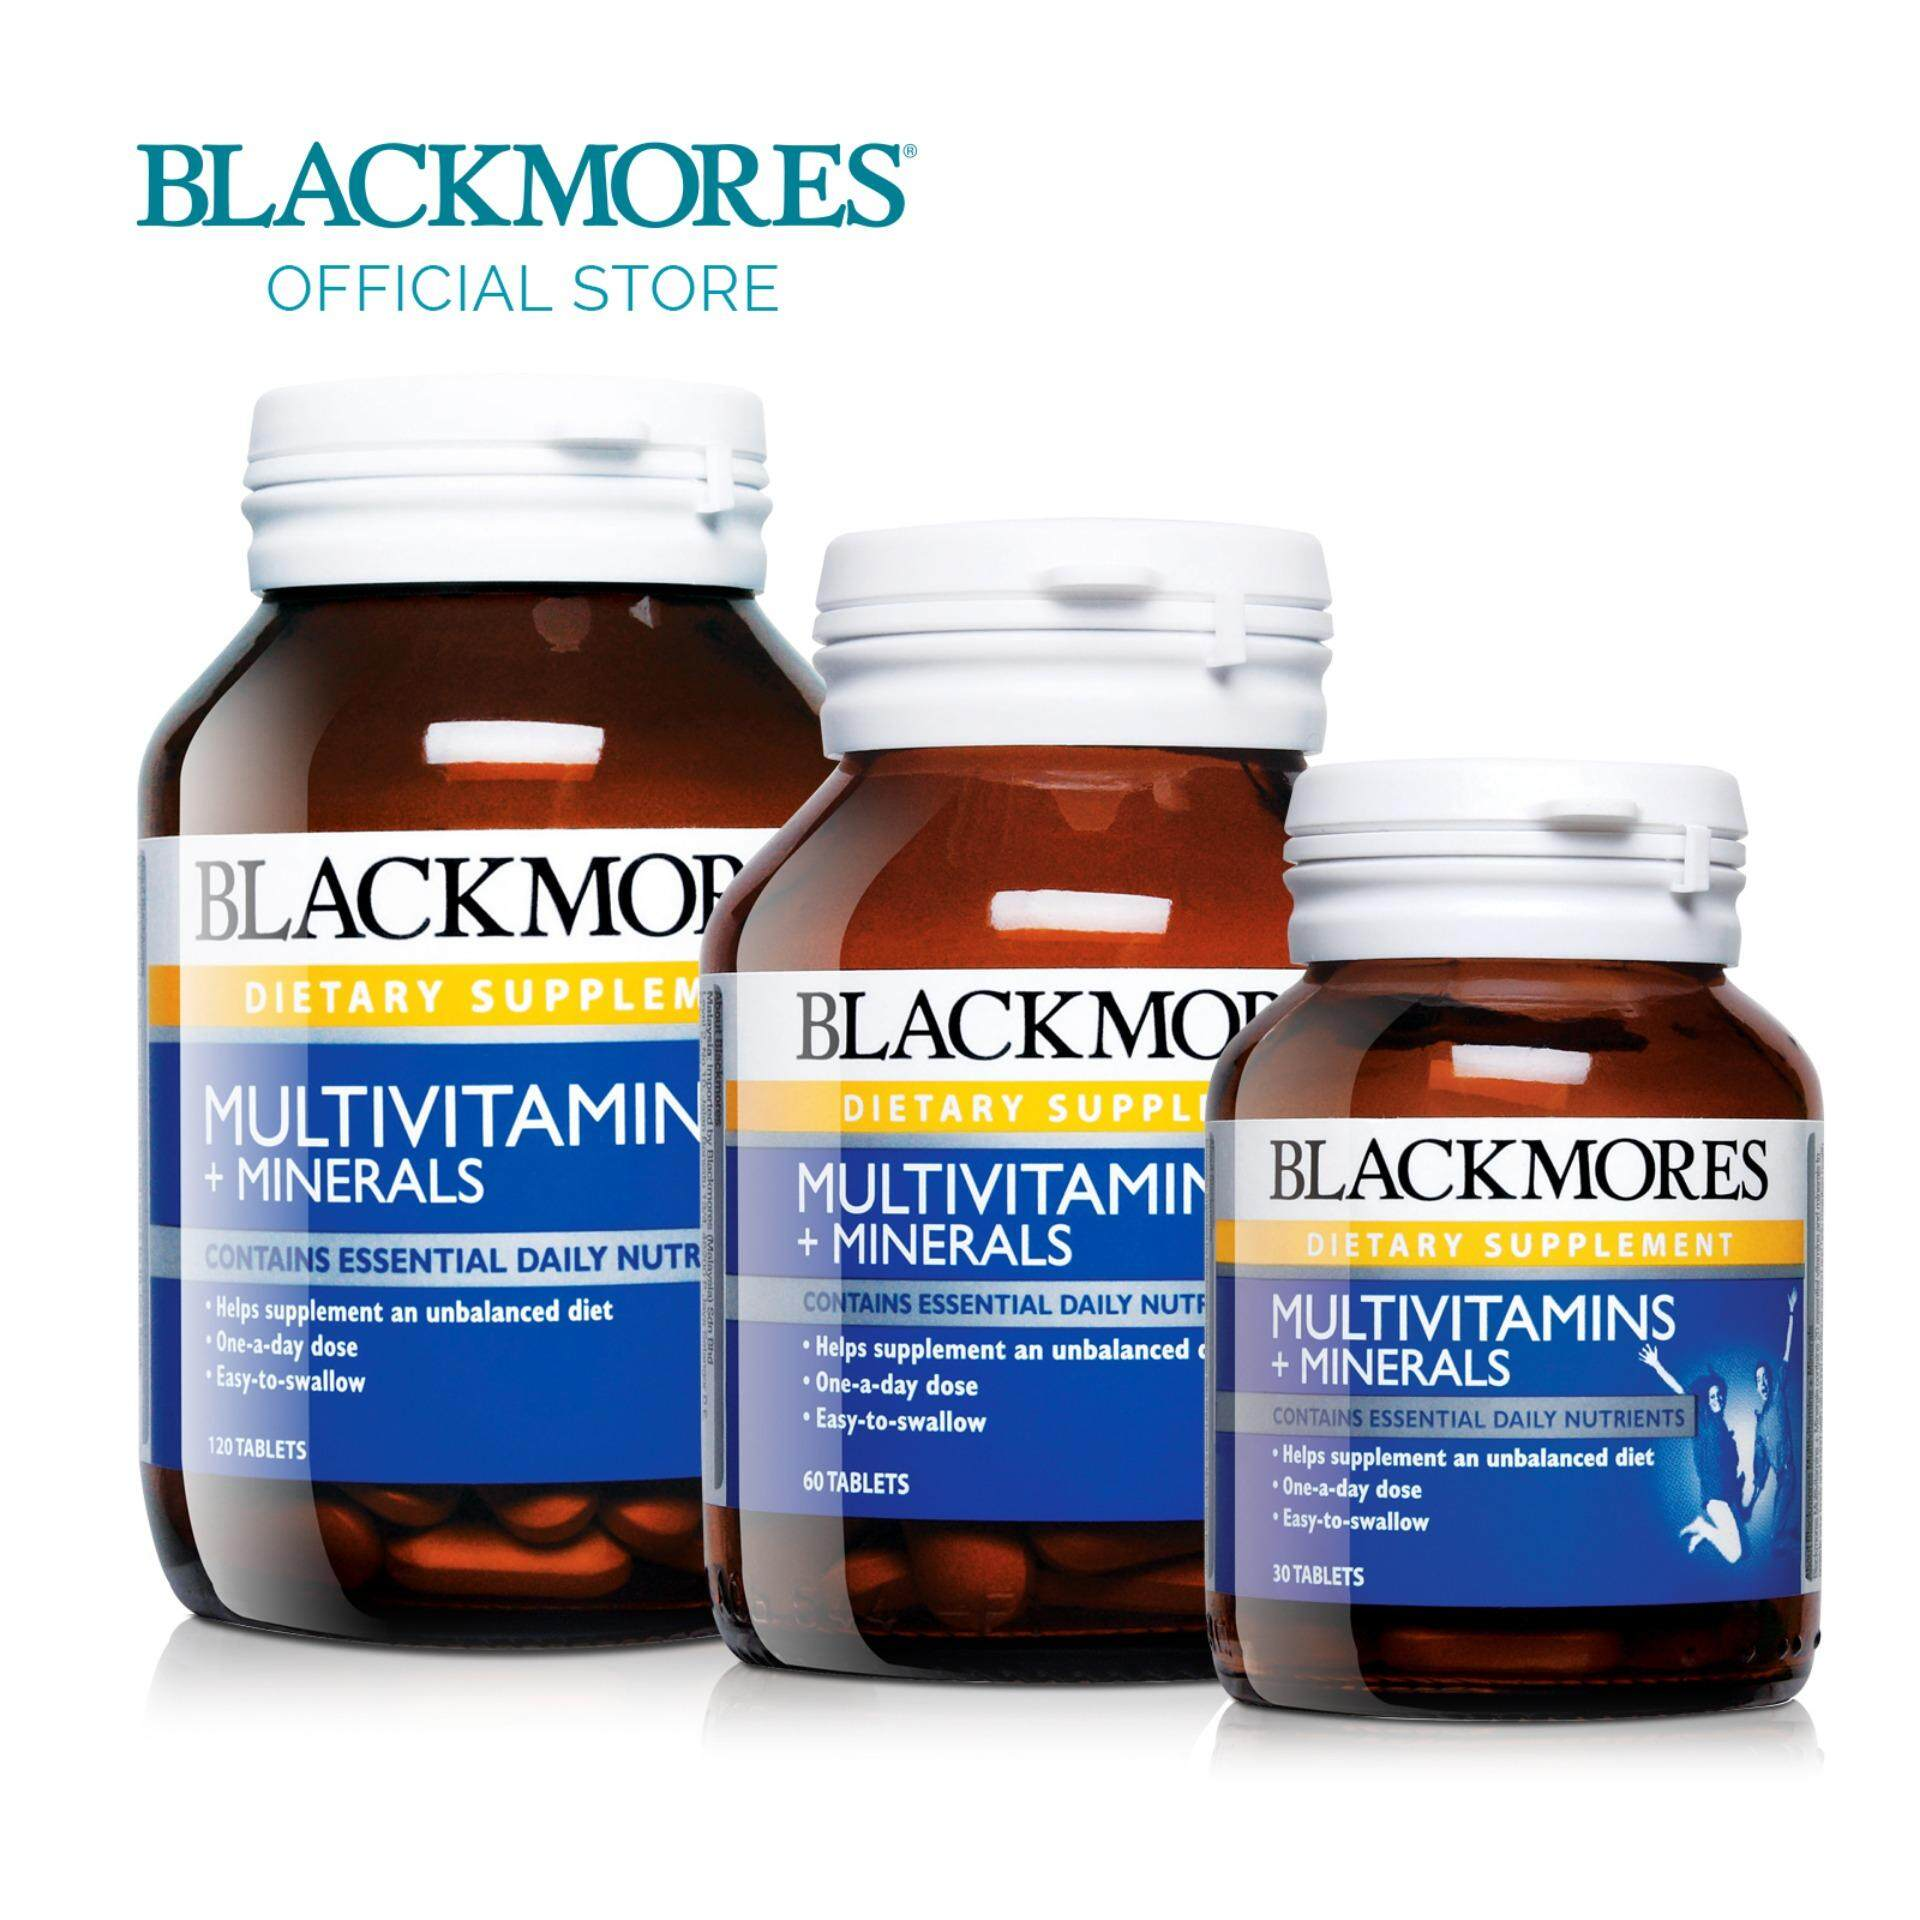 Blackmores Reviews Ratings And Best Price In Kl Selangor Natural E 250iu 50 Capsules Multivitamins Minerals 120s 60s 30s